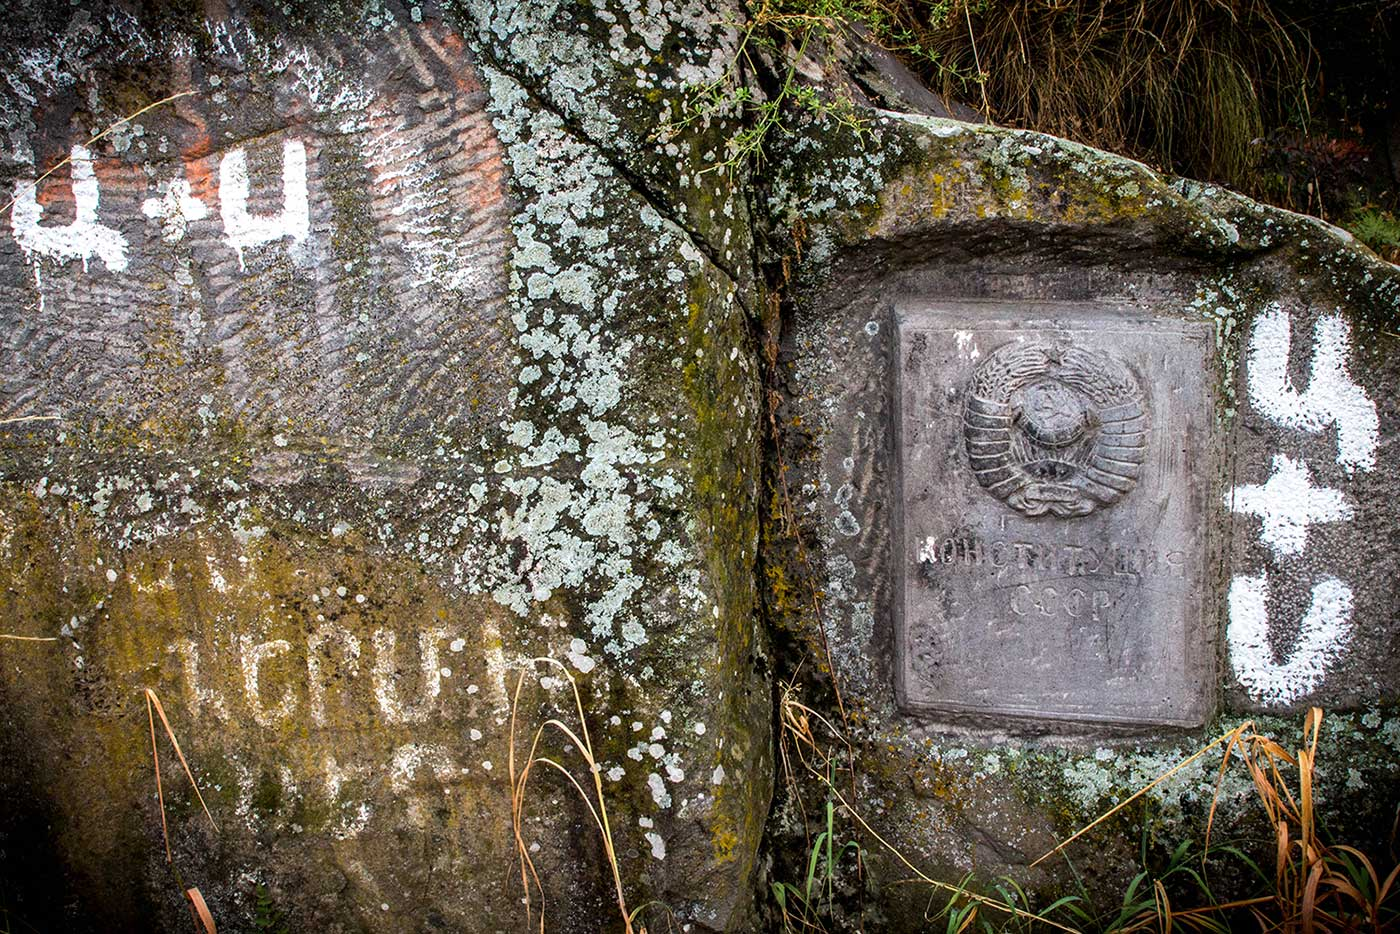 A cave in the rock contains this Soviet-era memorial to a local Bolshevik hero.